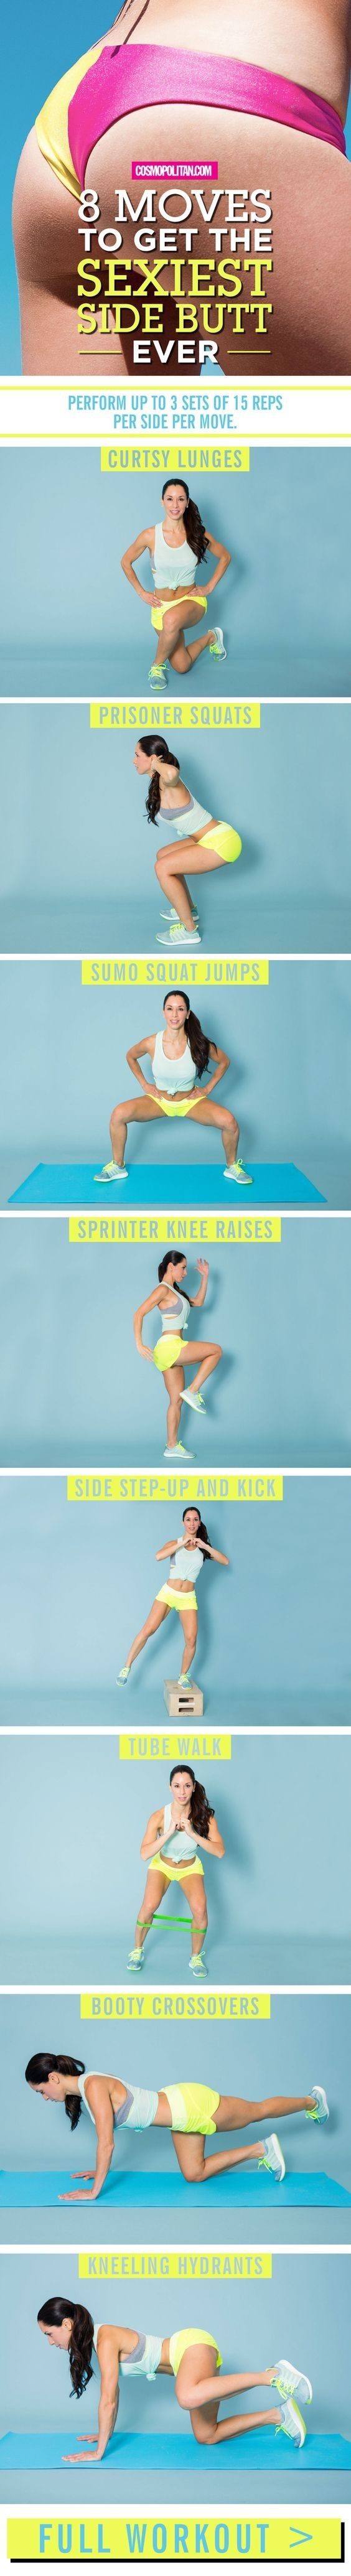 Give your butt some sexy definition with these moves.More Legs Workout, Fit Workout, Fitness Workouts, Body Babes, Butt Workouts, Legs Bootie Workout